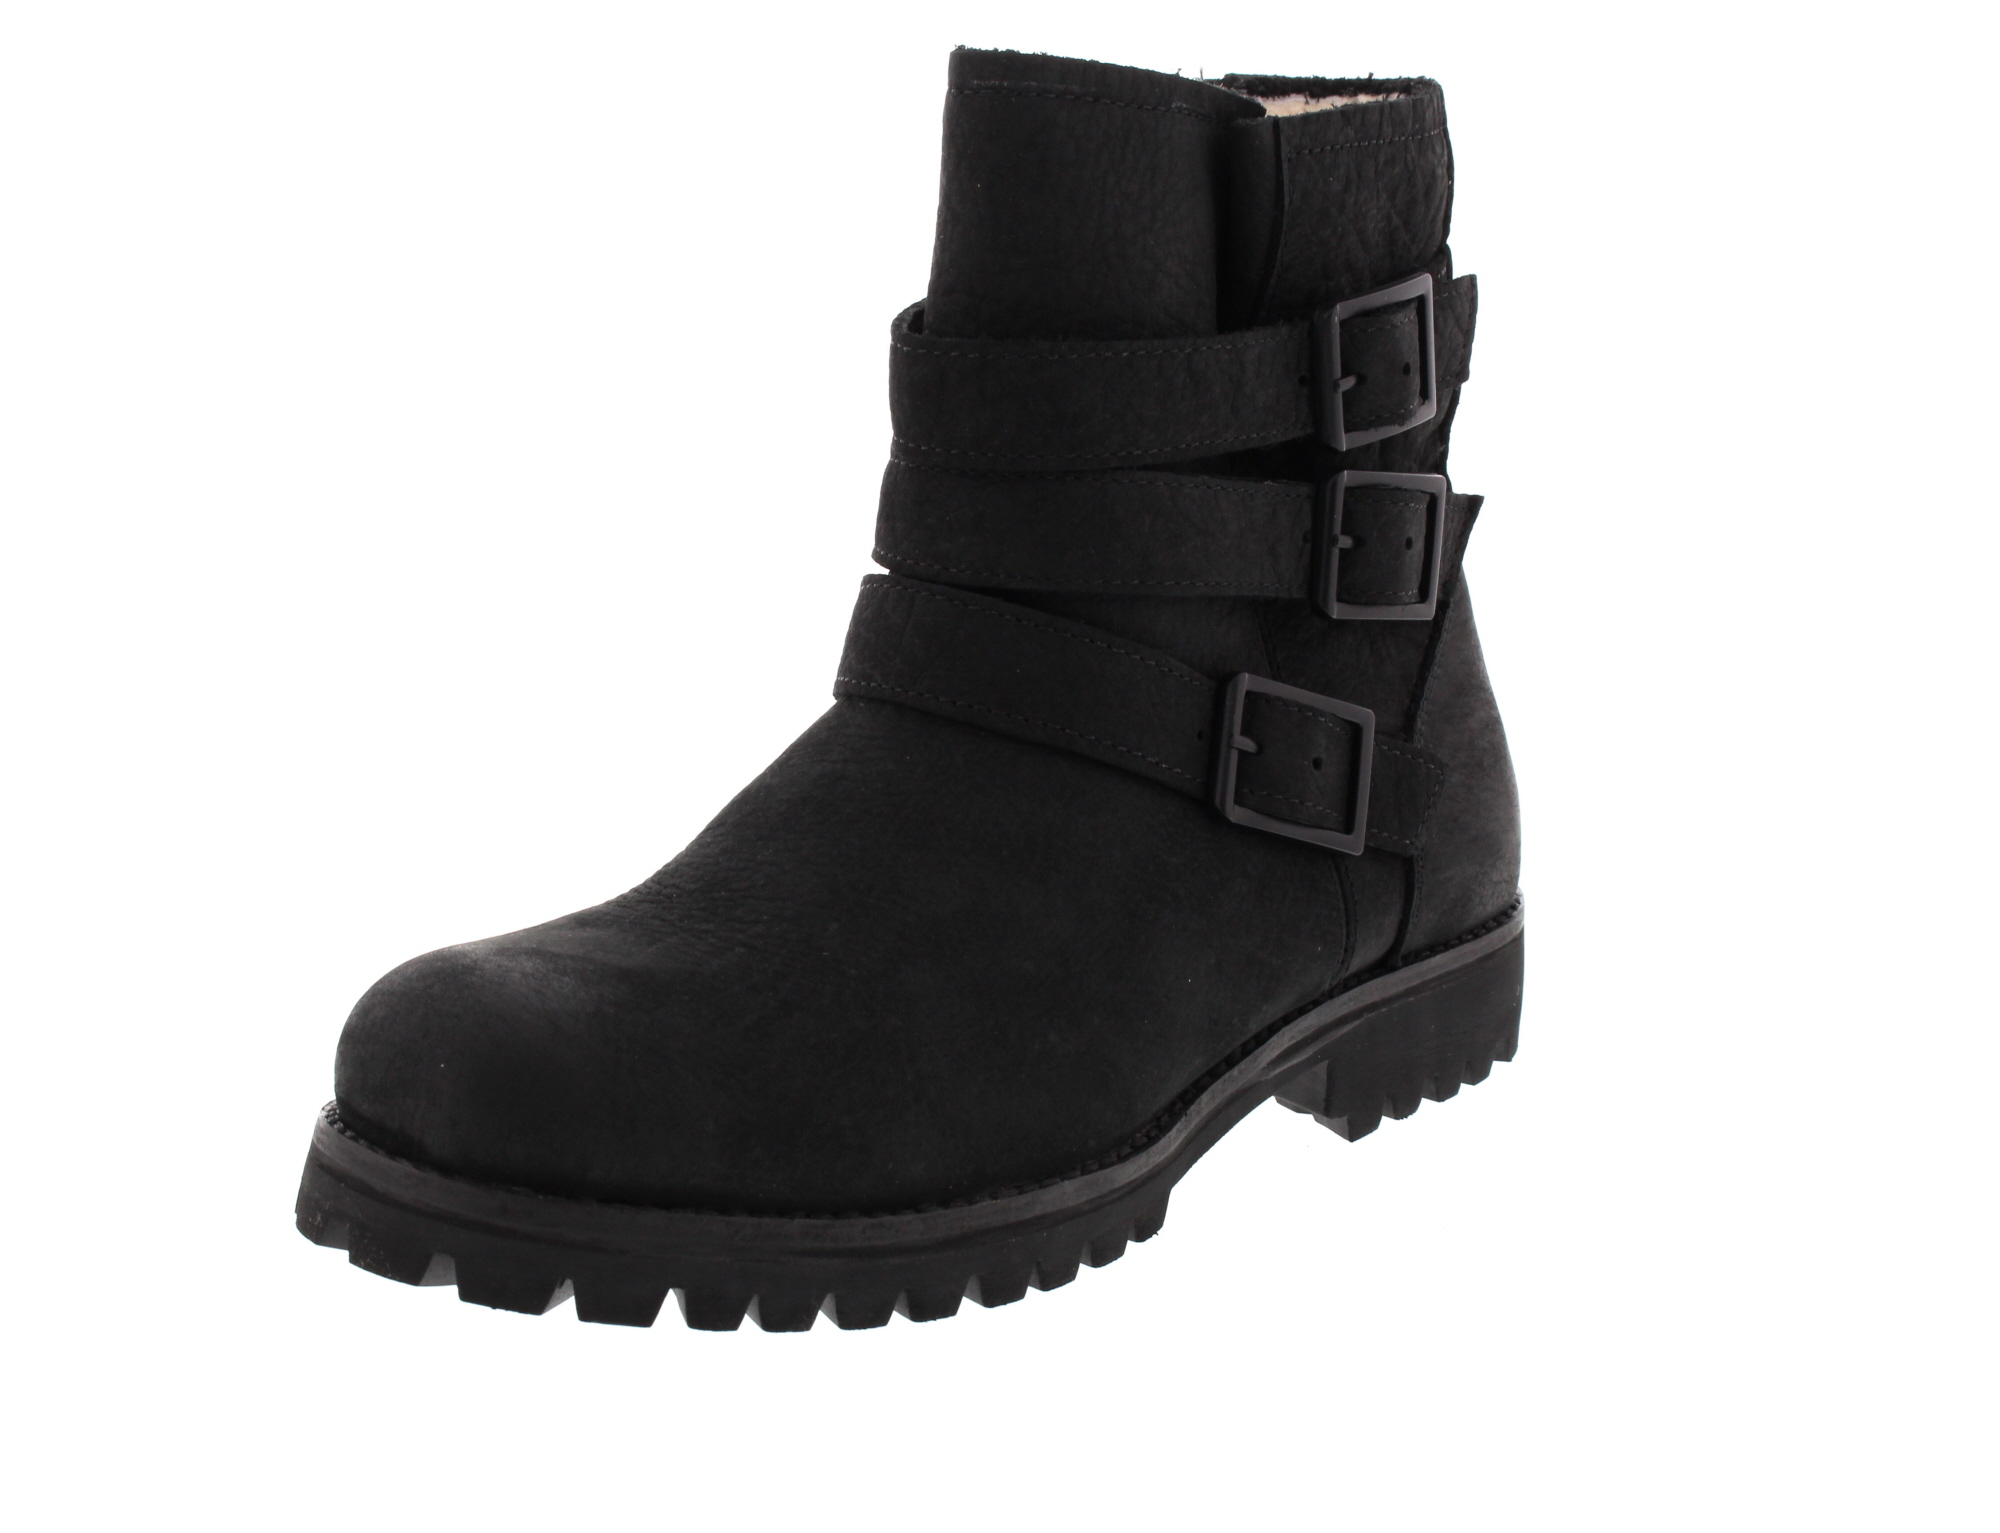 BLACKSTONE Damenschuhe HIGH BOOT BUCKLE FUR OL14 black_0